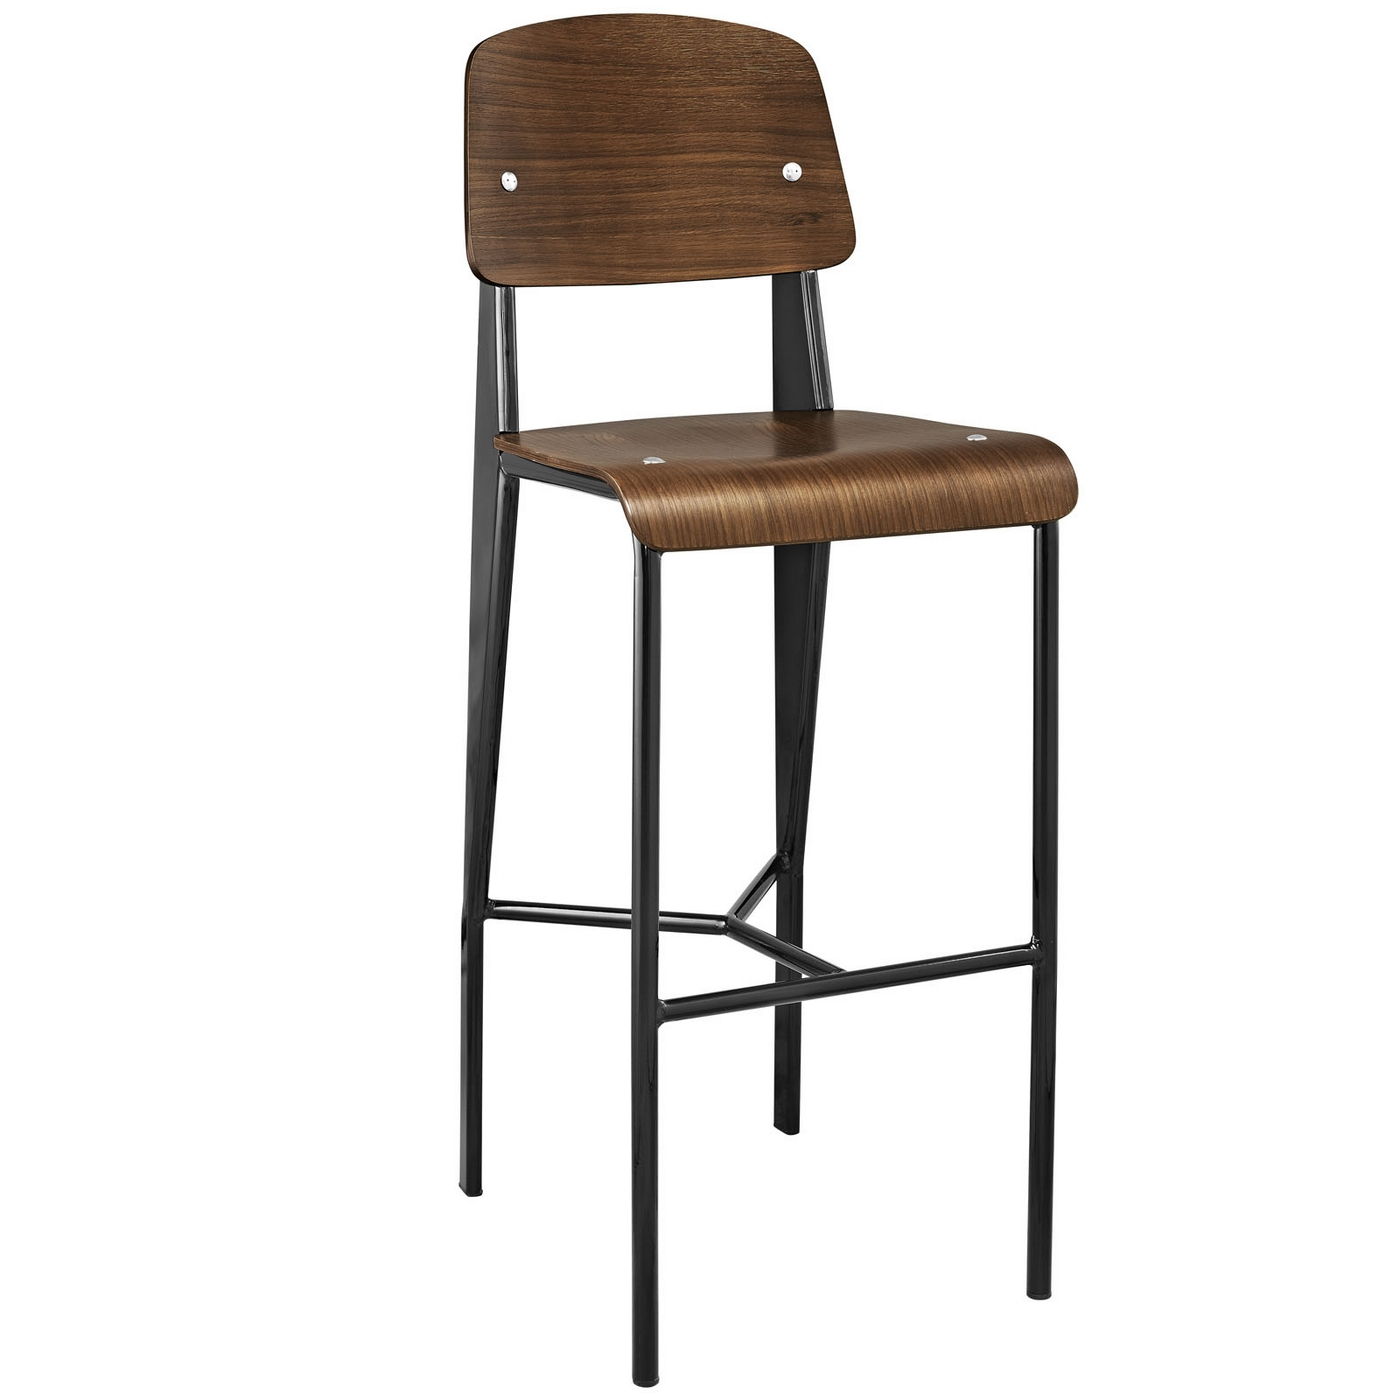 Contemporary Bar Stools Cabin Contemporary Bentwood Back Bar Stool With Metal